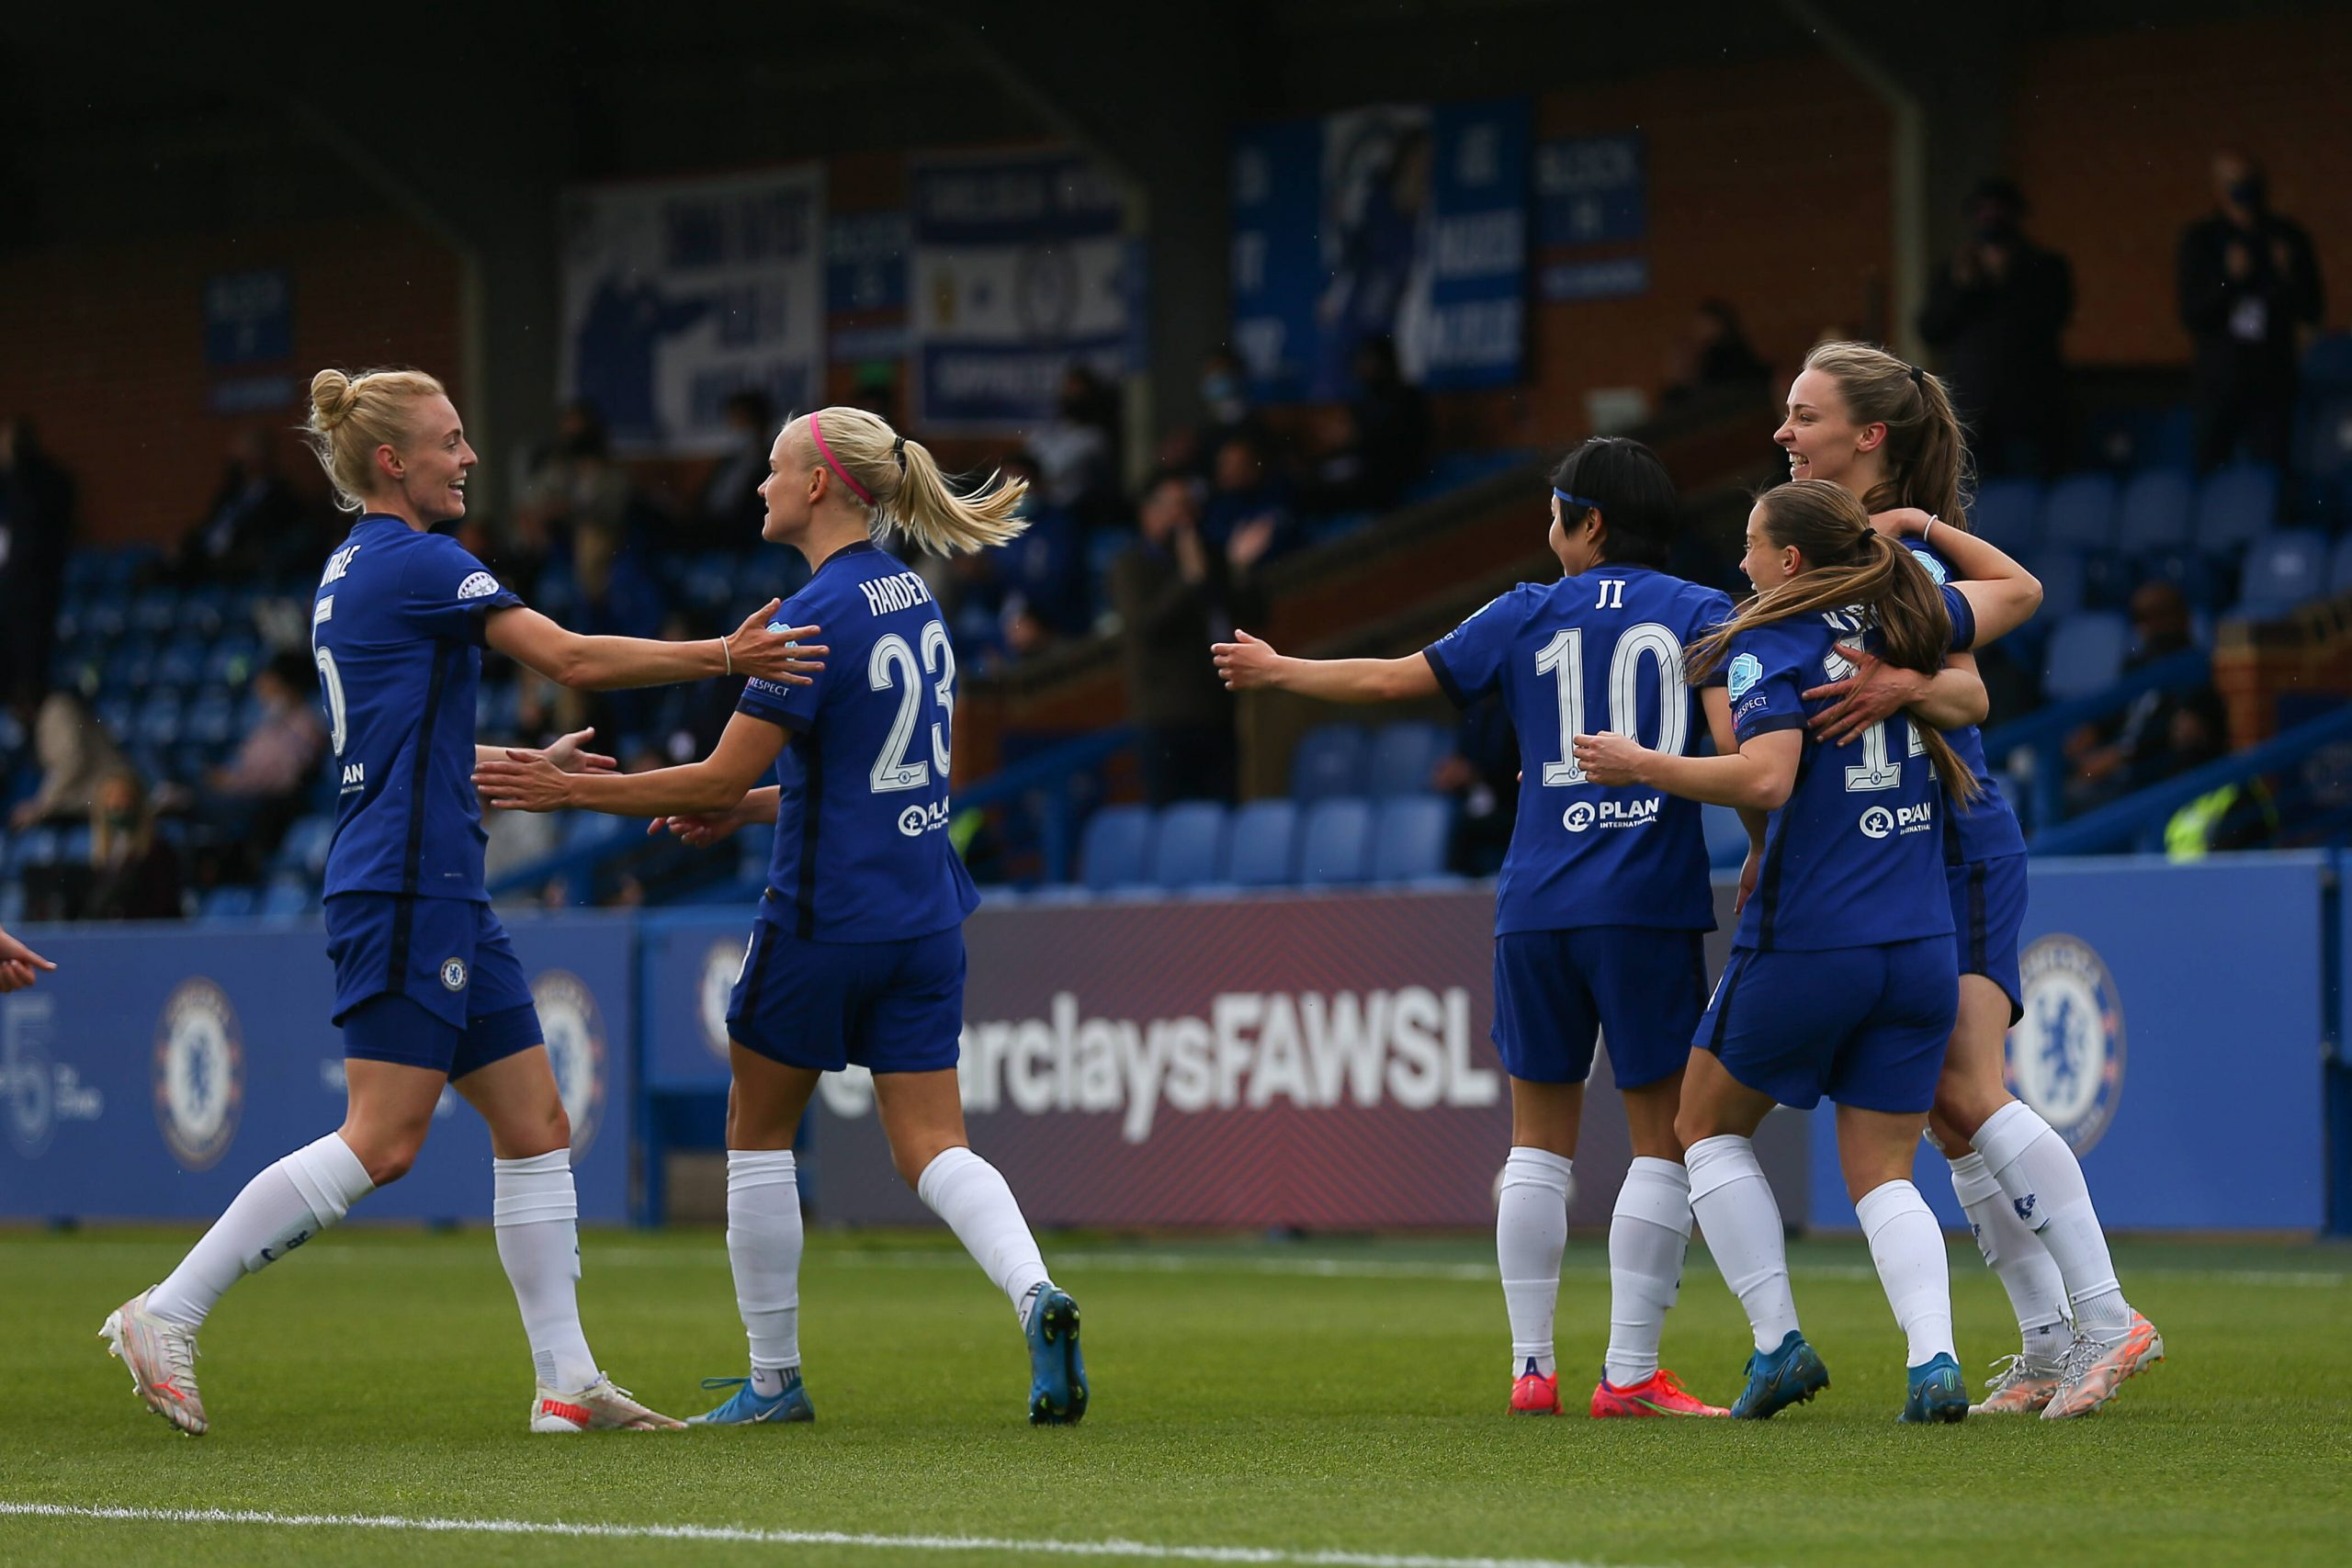 Chelsea Women celebrate beating Bayern Munich Ladies in the semi-final of the UEFA Champions League. (imago Images)